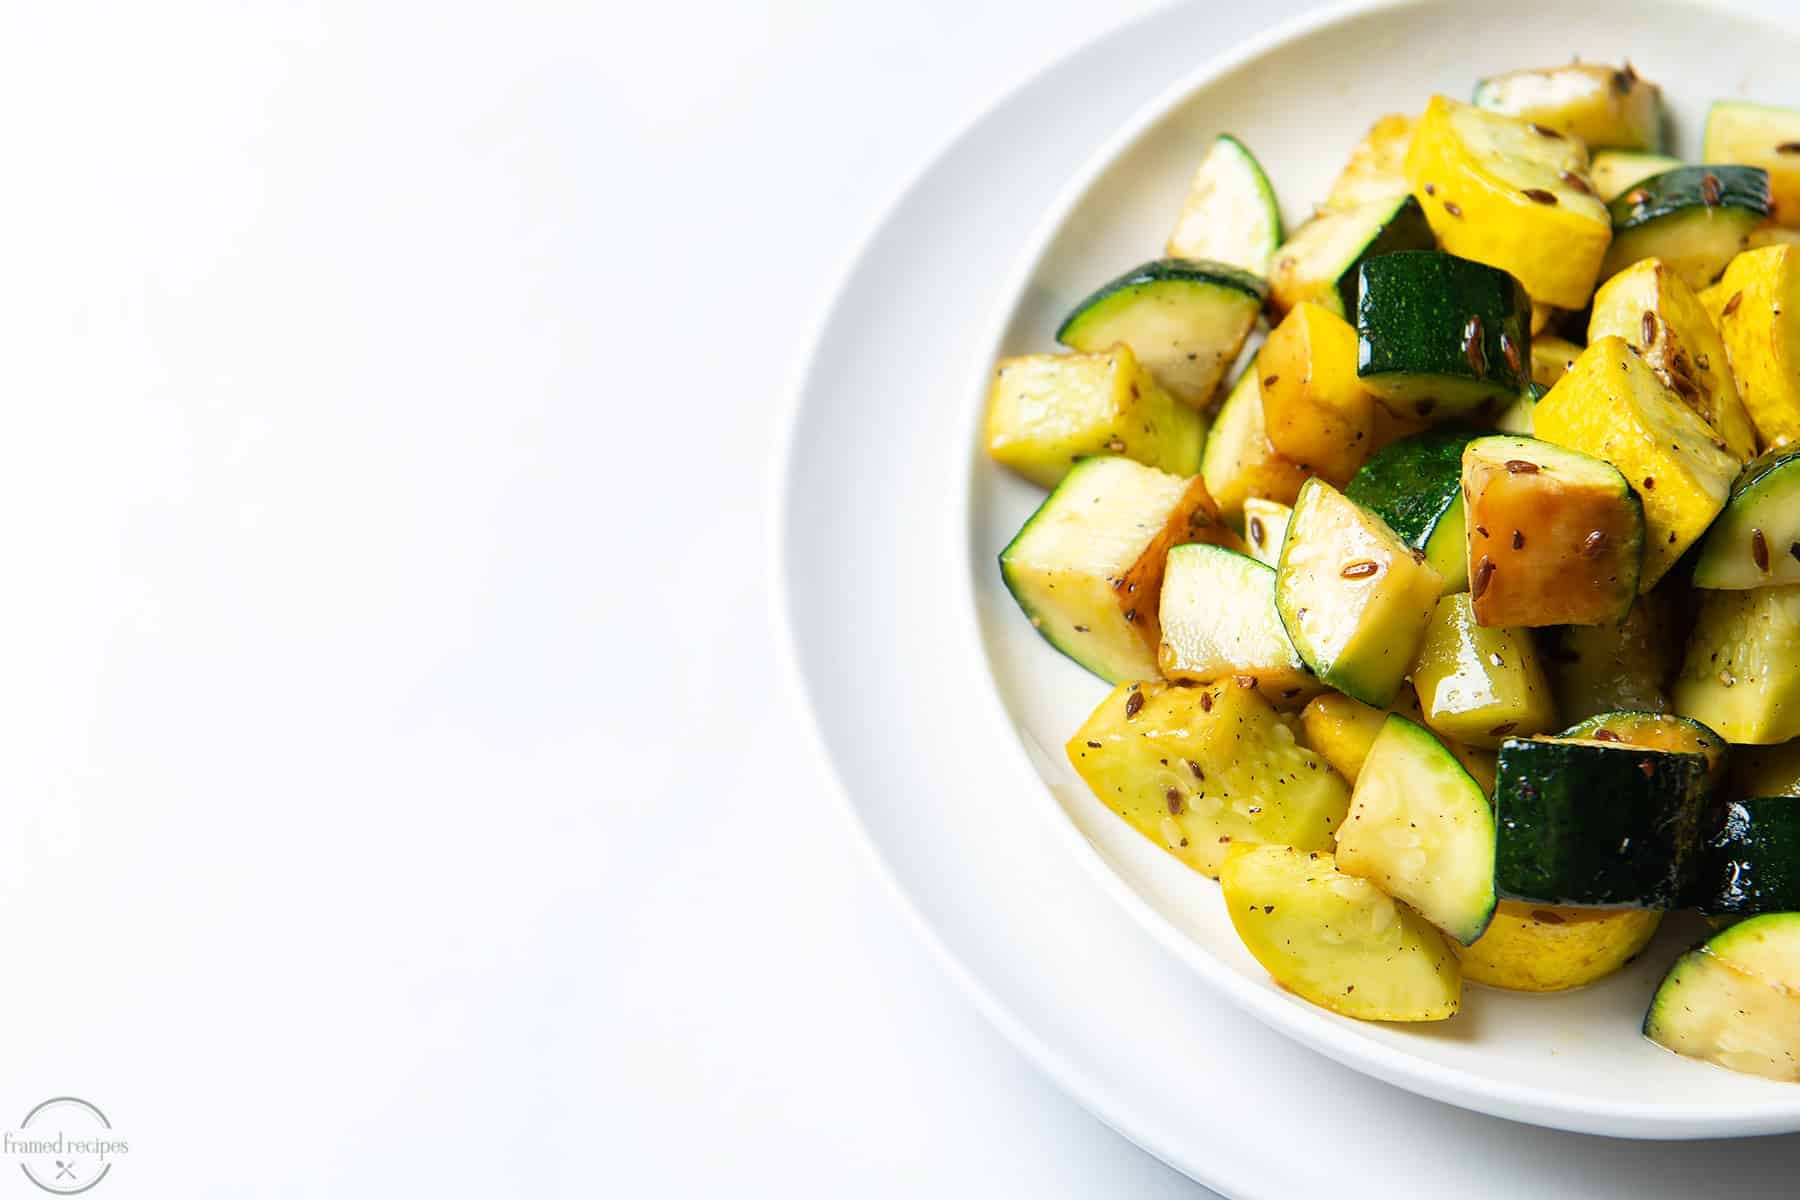 delicious recipe for summer squash seasoned with cumin and black pepper